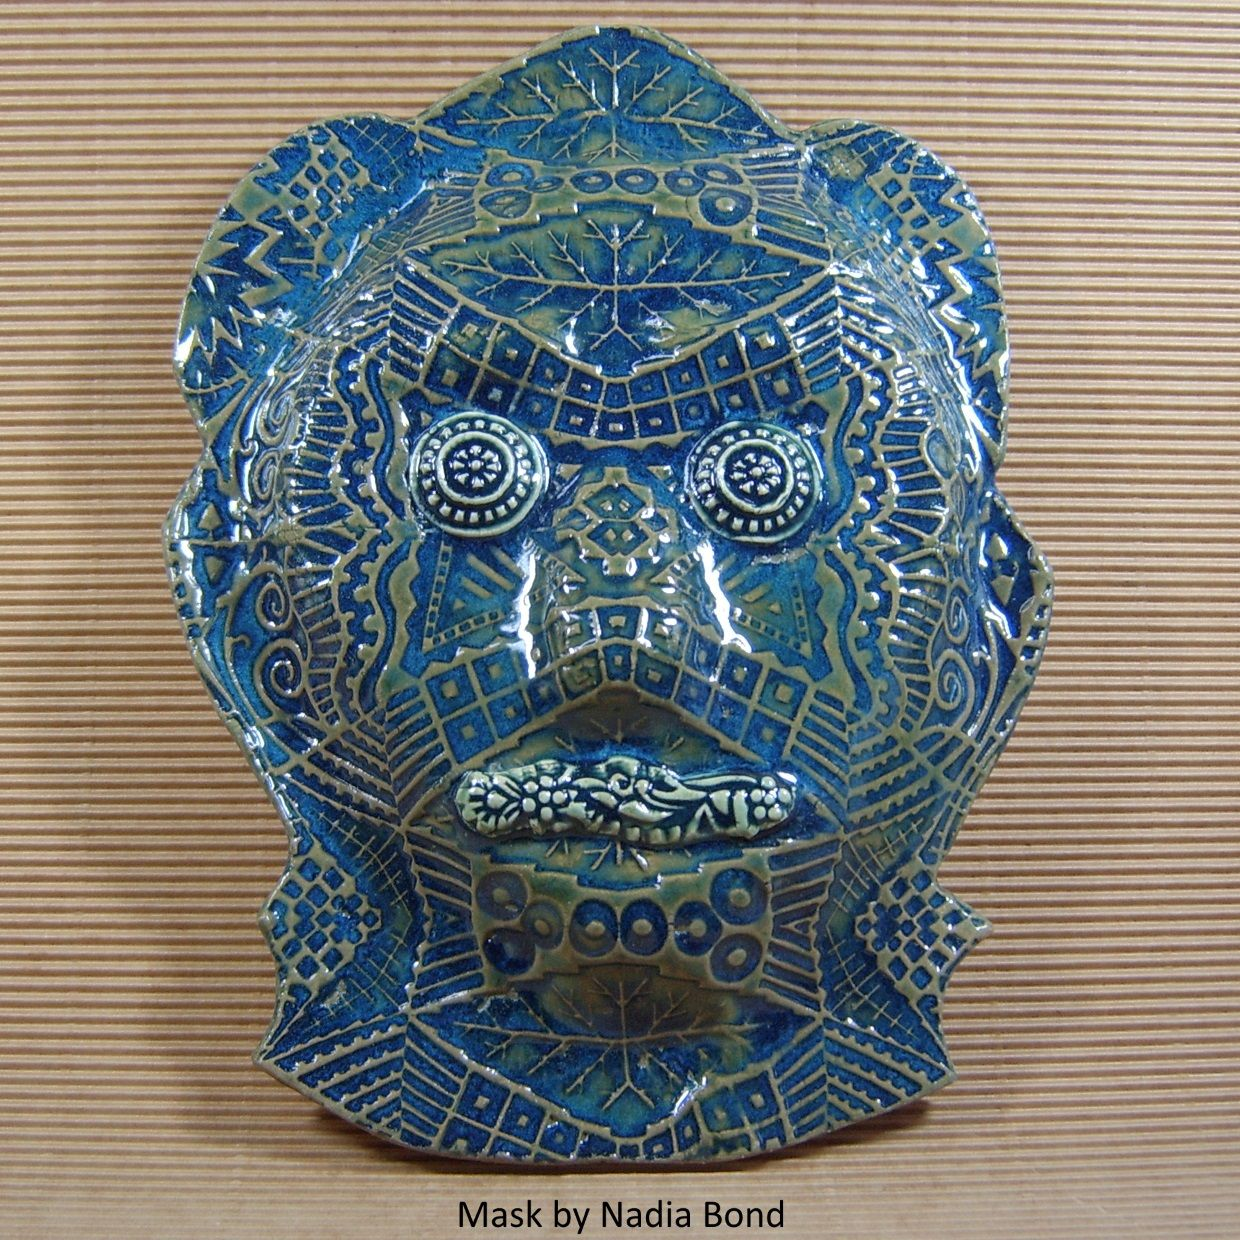 Nadia Bond's mask, MICHABO, for the 2016 Faces of Value Fundraising Gala, Collingswood, NJ. Amaco Midnight Blue glaze, lifted with a dip in Oribe afterwards. Michabo is the American Indian God of Many Things.